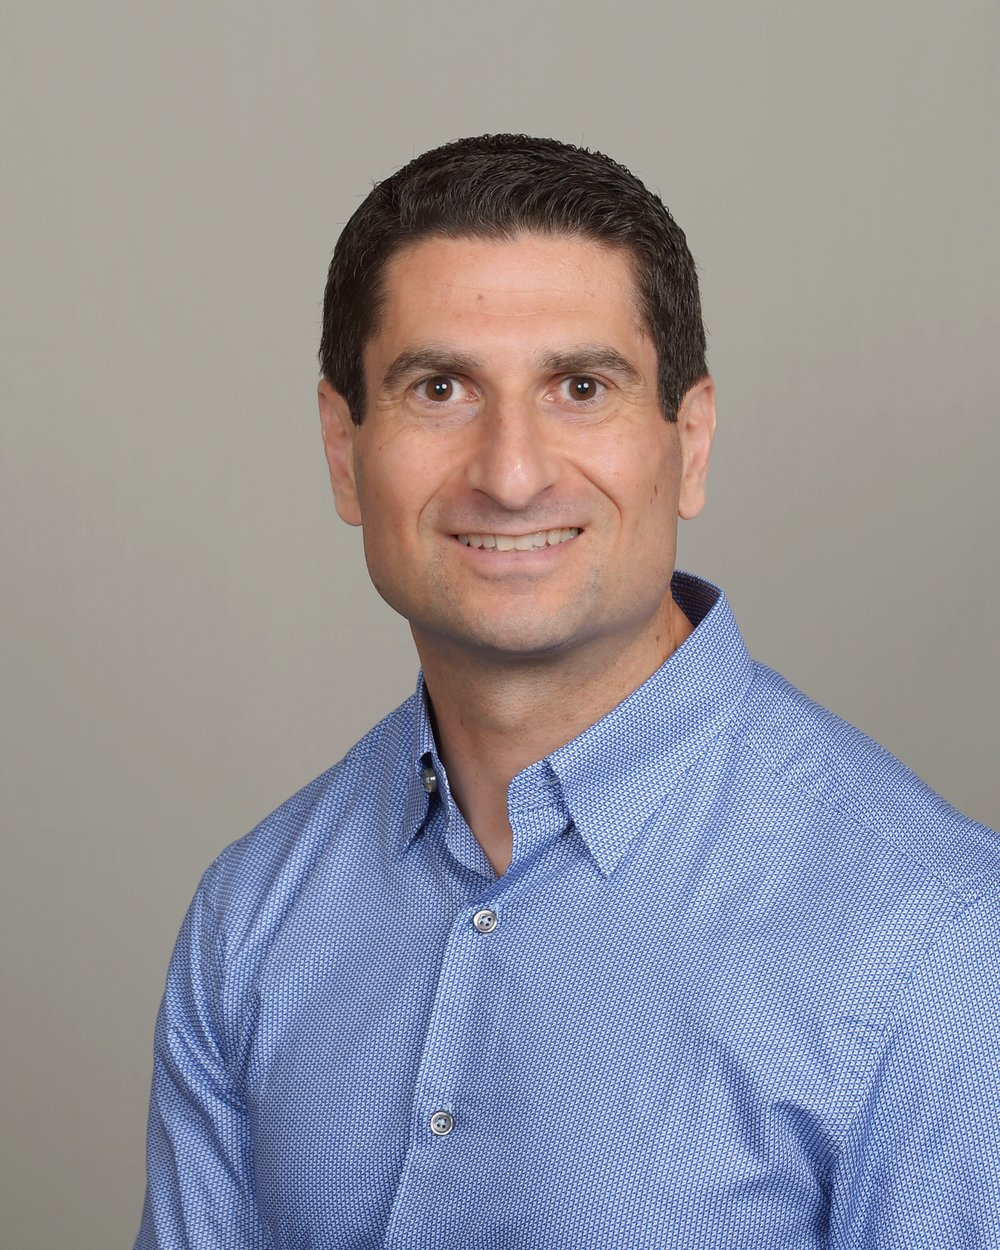 Reza ghaboosi, AMFT Associate marriage and family therapist